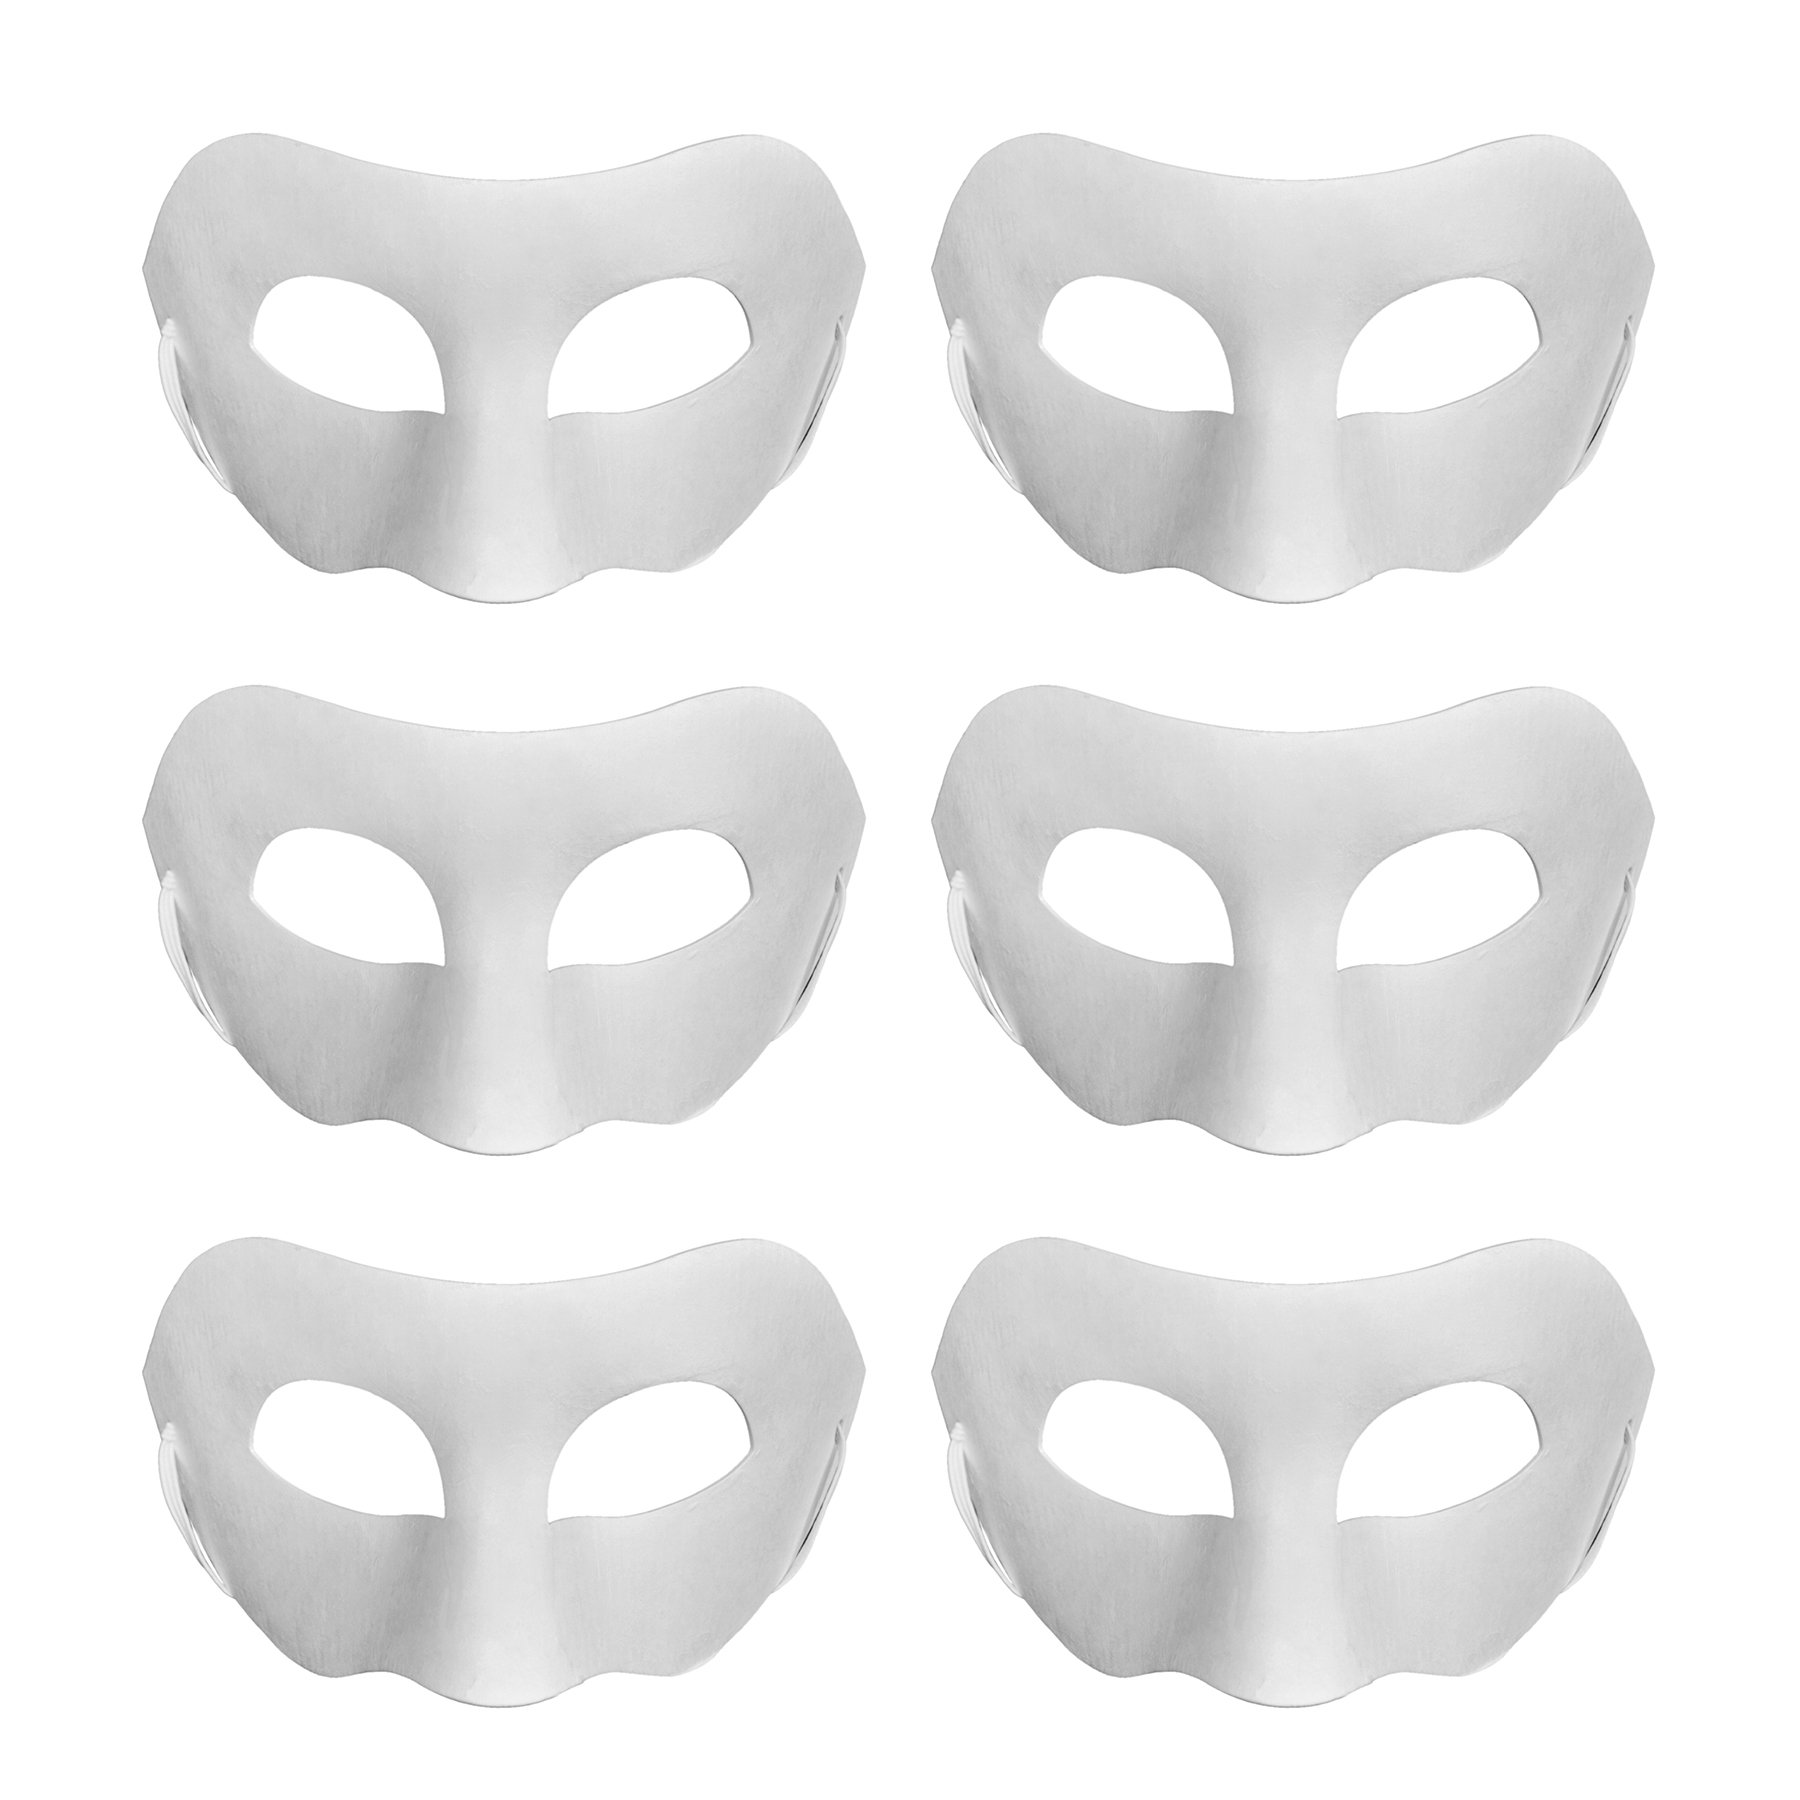 Aspire 72 PCS Blank DIY Masks Craft Paper Halloween Masquerade Face Mask Decorating Party Costume by Aspire